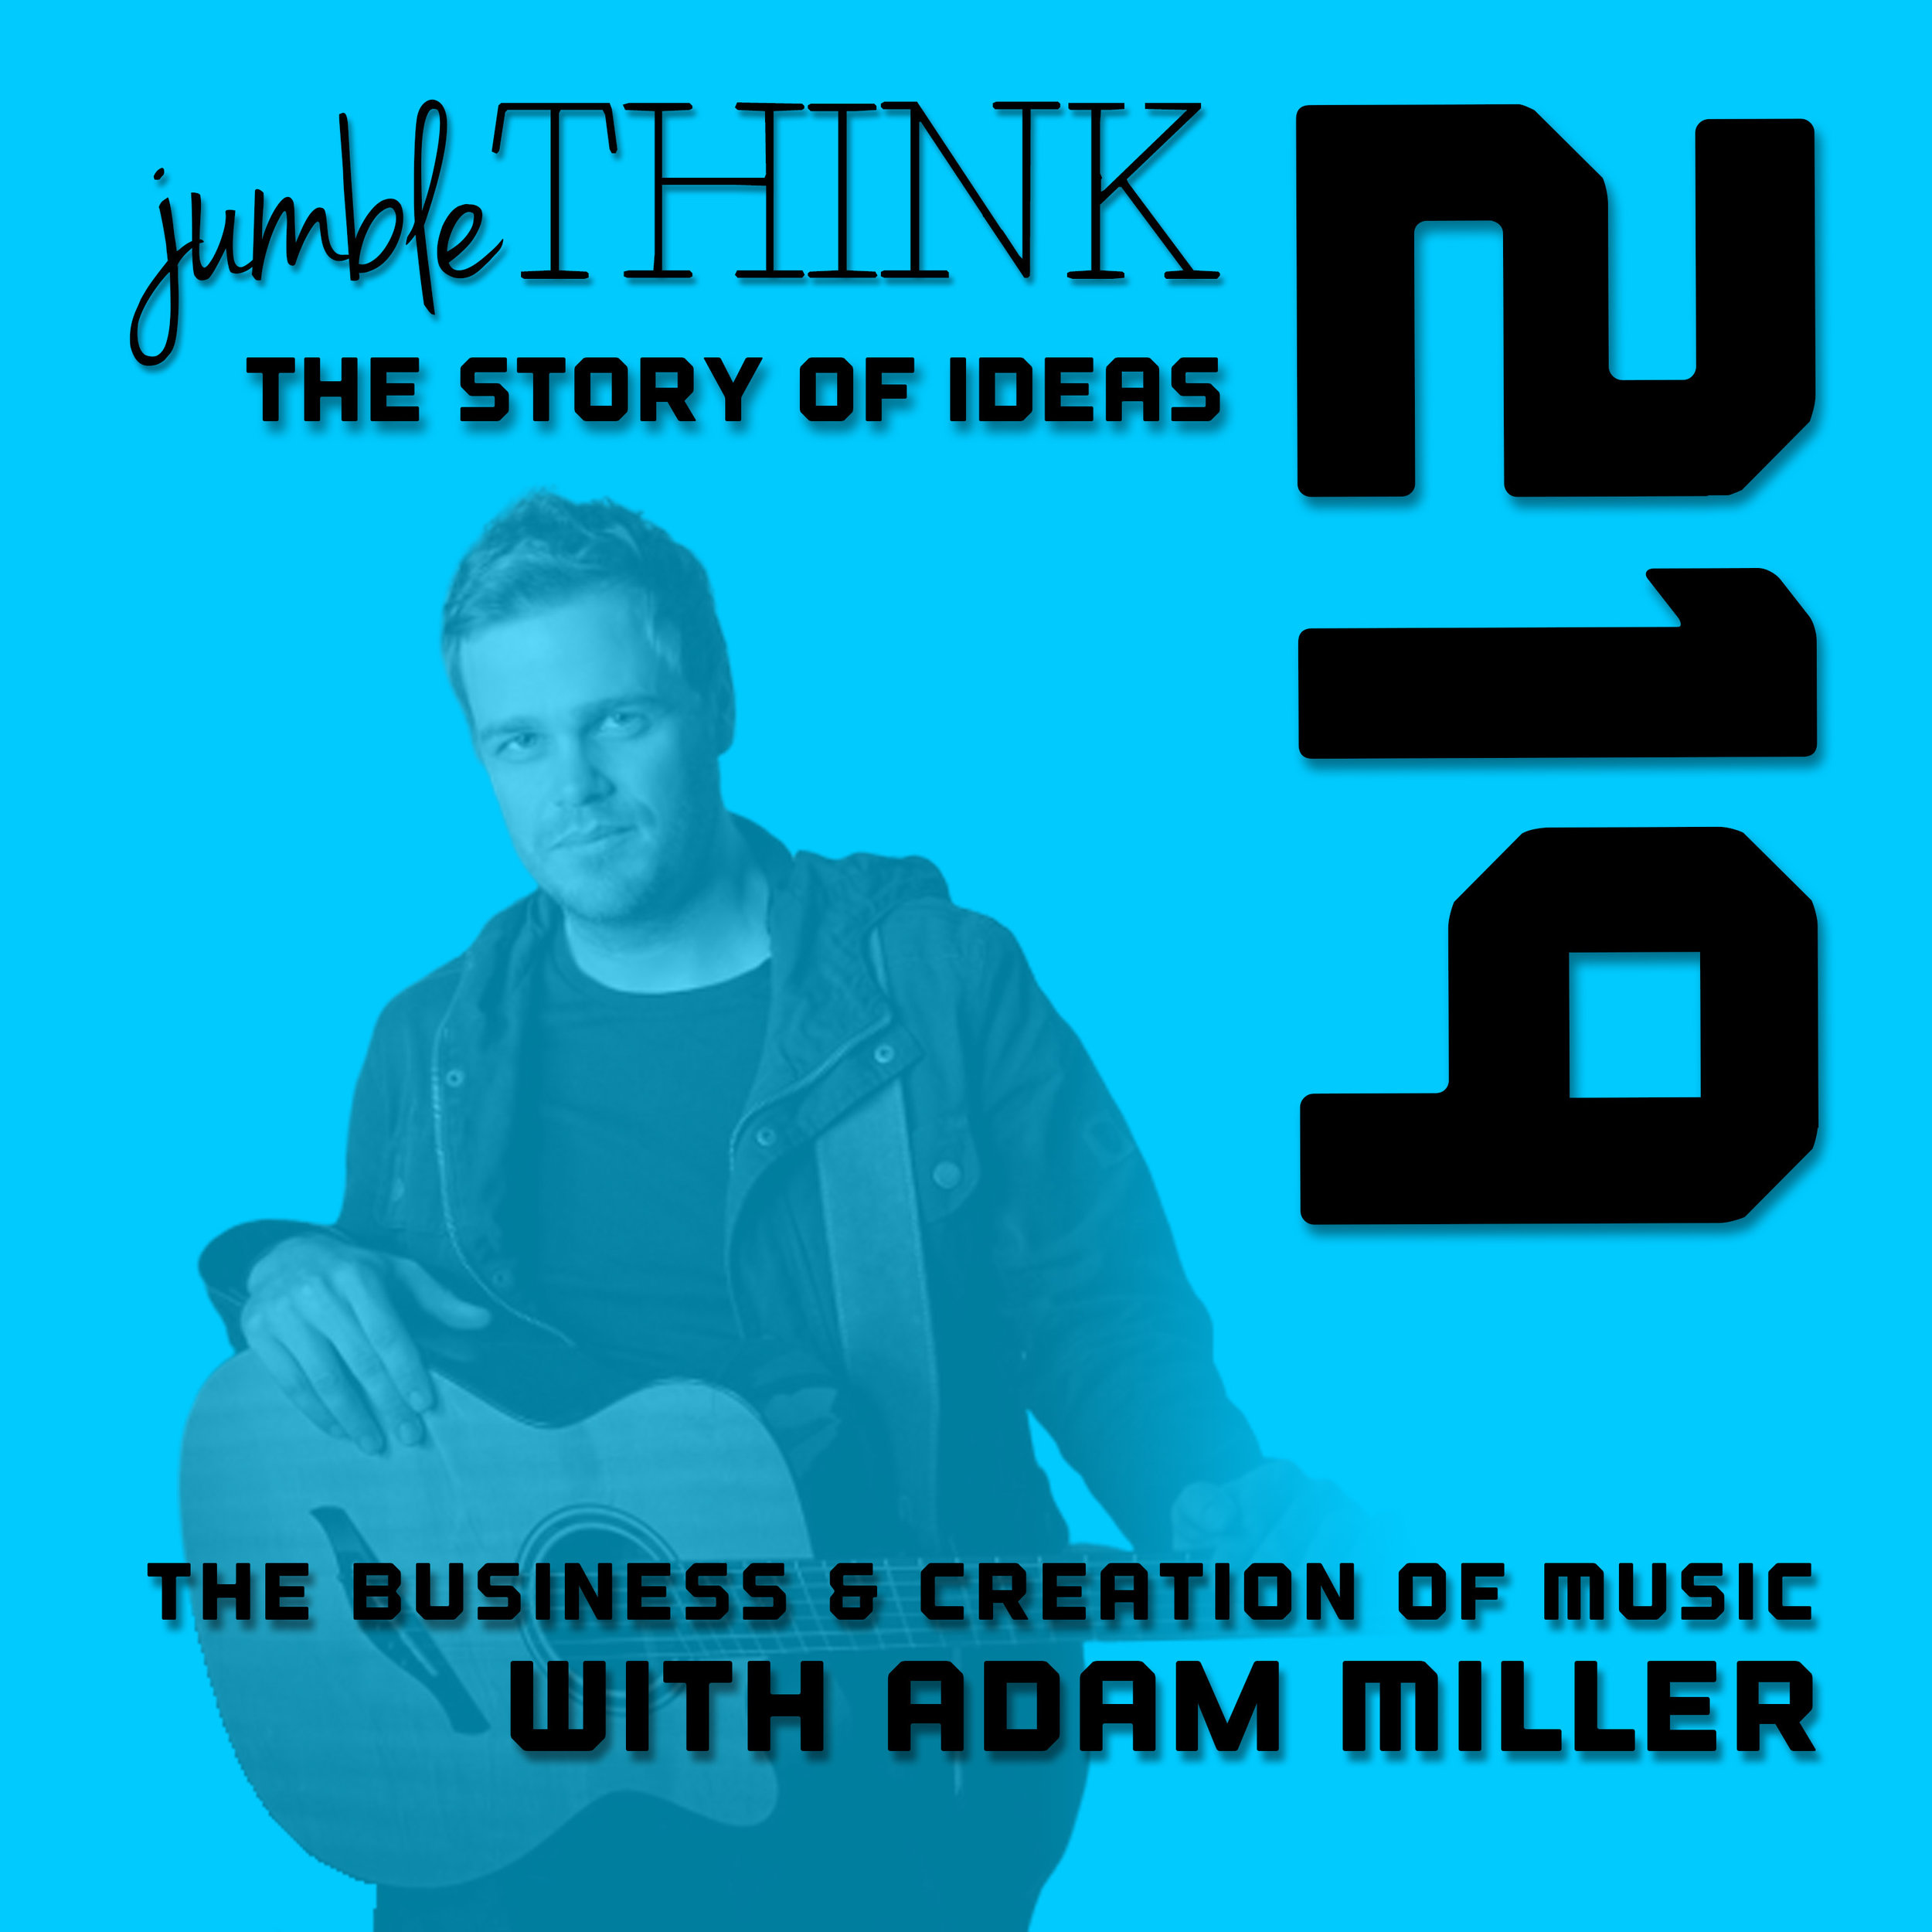 The Business and Creation of Music